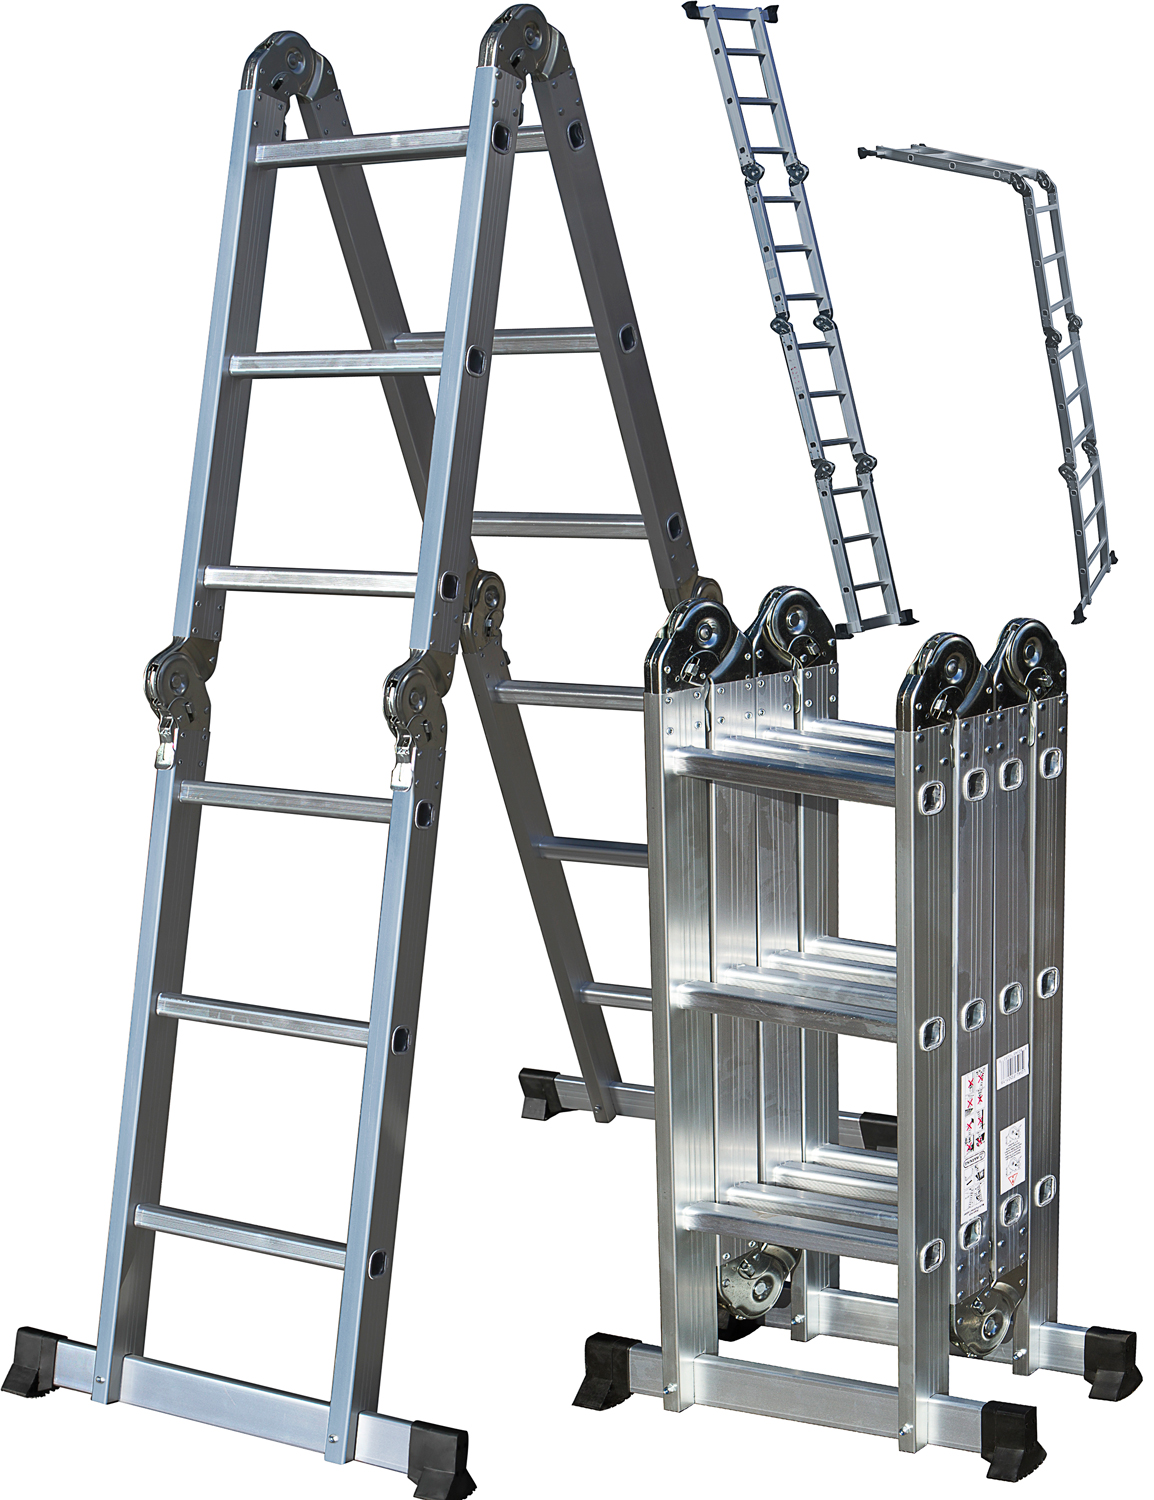 OxGord Heavy Duty Aluminum Folding Scaffold Work Ladder 12.5 ft Multi-Fold Step Light Weight Multi-Purpose extension - 330 LB Capacity